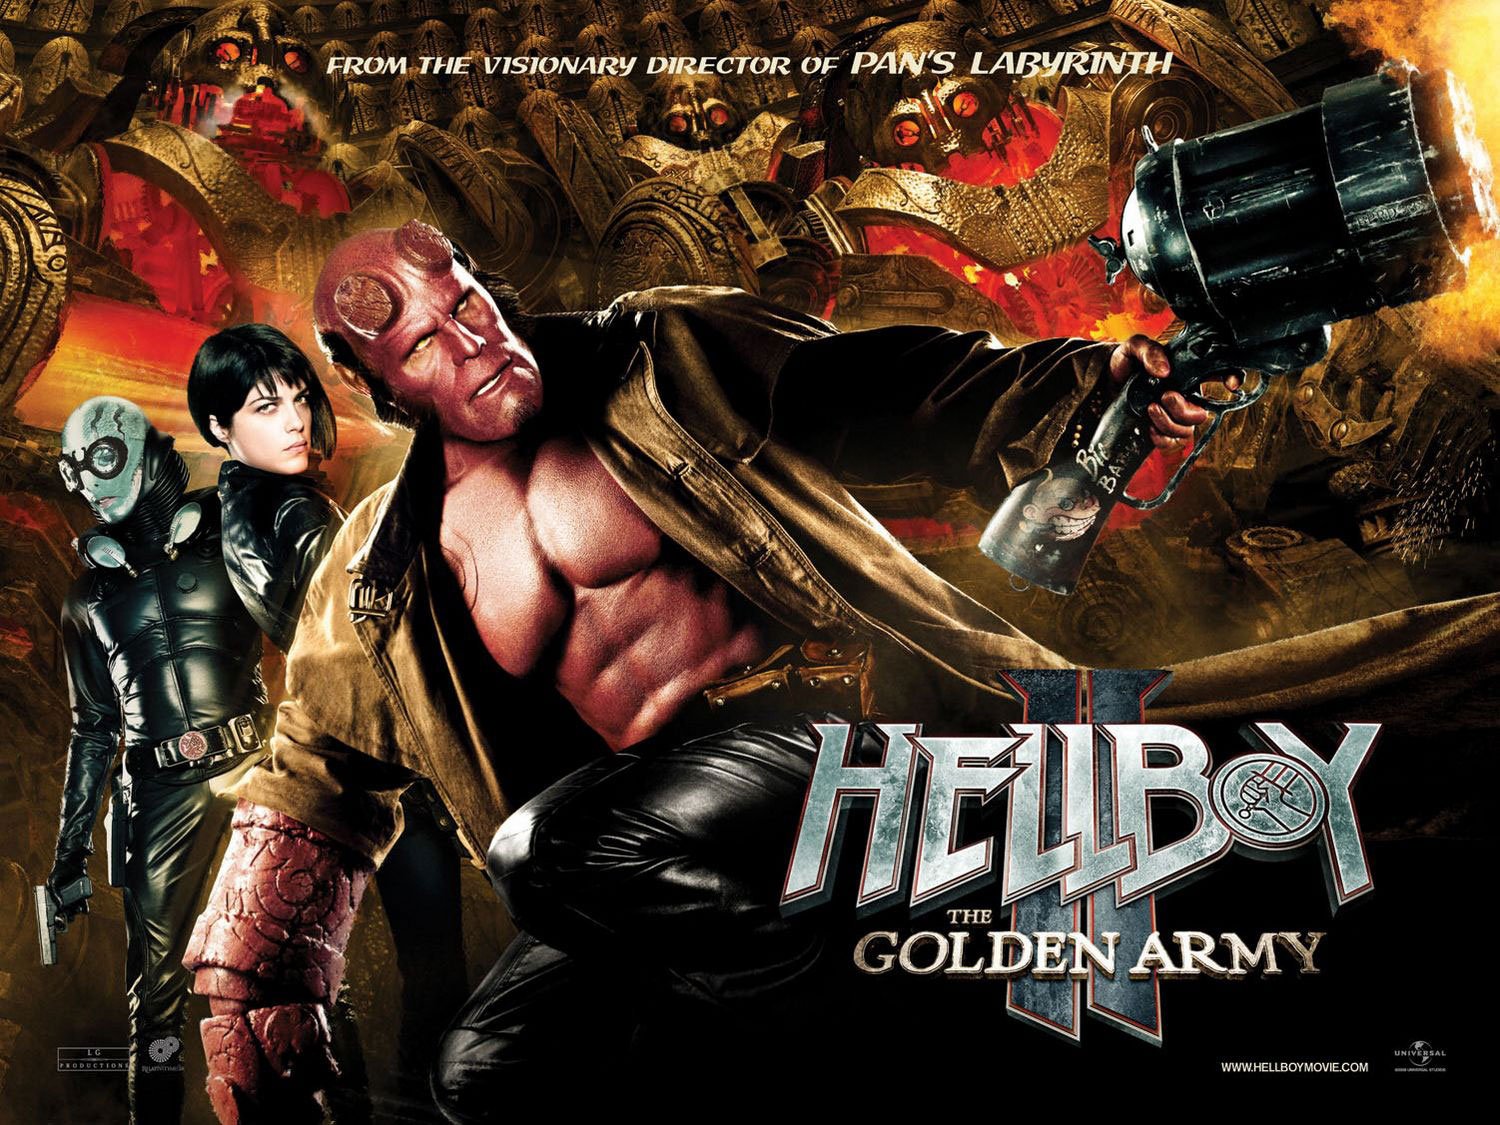 Hellboy II: The Golden Army is one of the most wild superhero films with a unique plot and crazy characters. A mix of monsters and creatures come together to help the government fight off an evil monster who wants to destroy the world. These characters and crazy action scenes make for an intriguing and popular […]